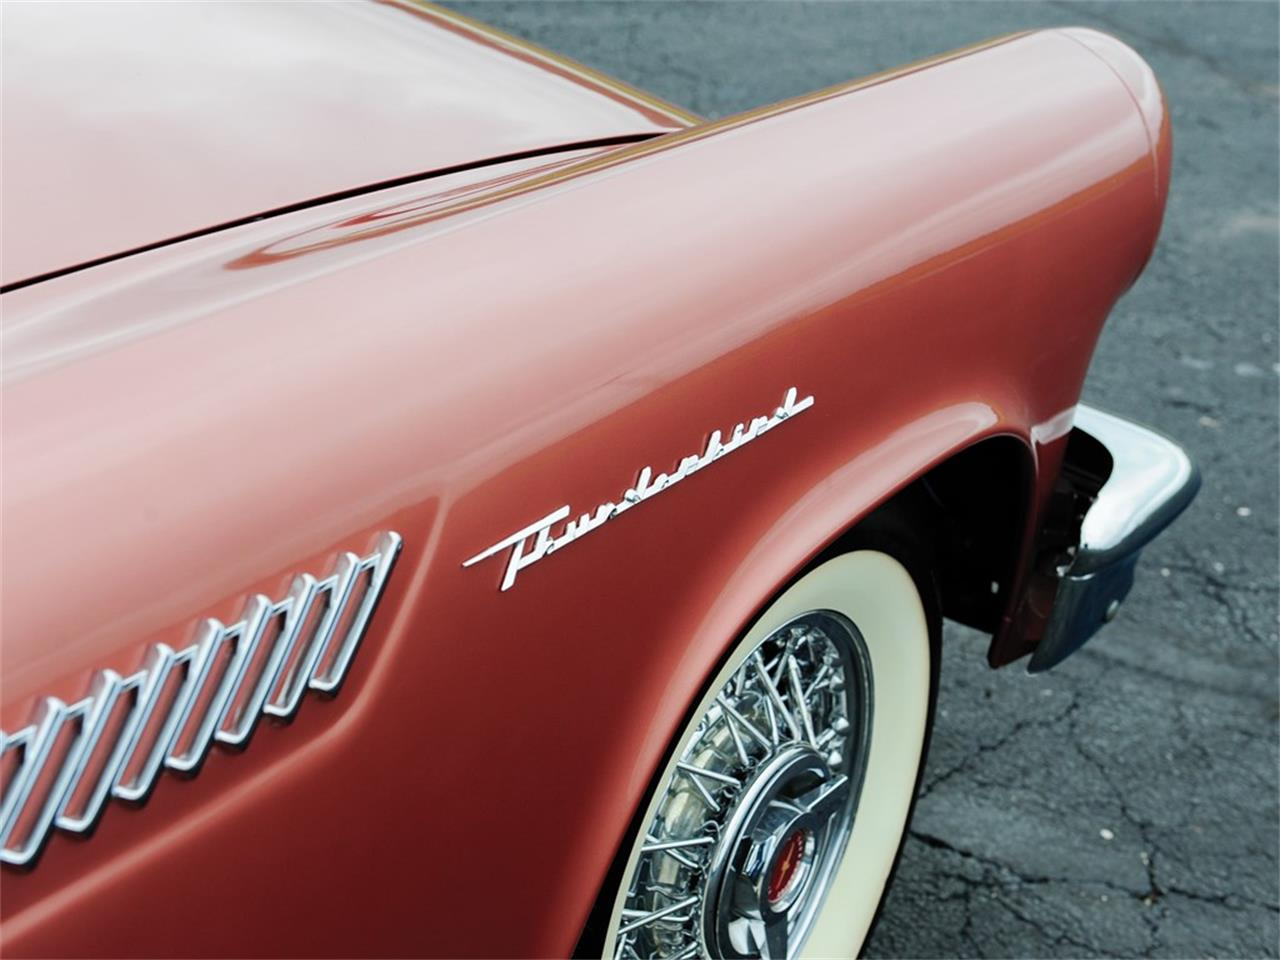 Large Picture of '57 Ford Thunderbird located in Auburn Indiana Auction Vehicle Offered by RM Sotheby's - Q12Q